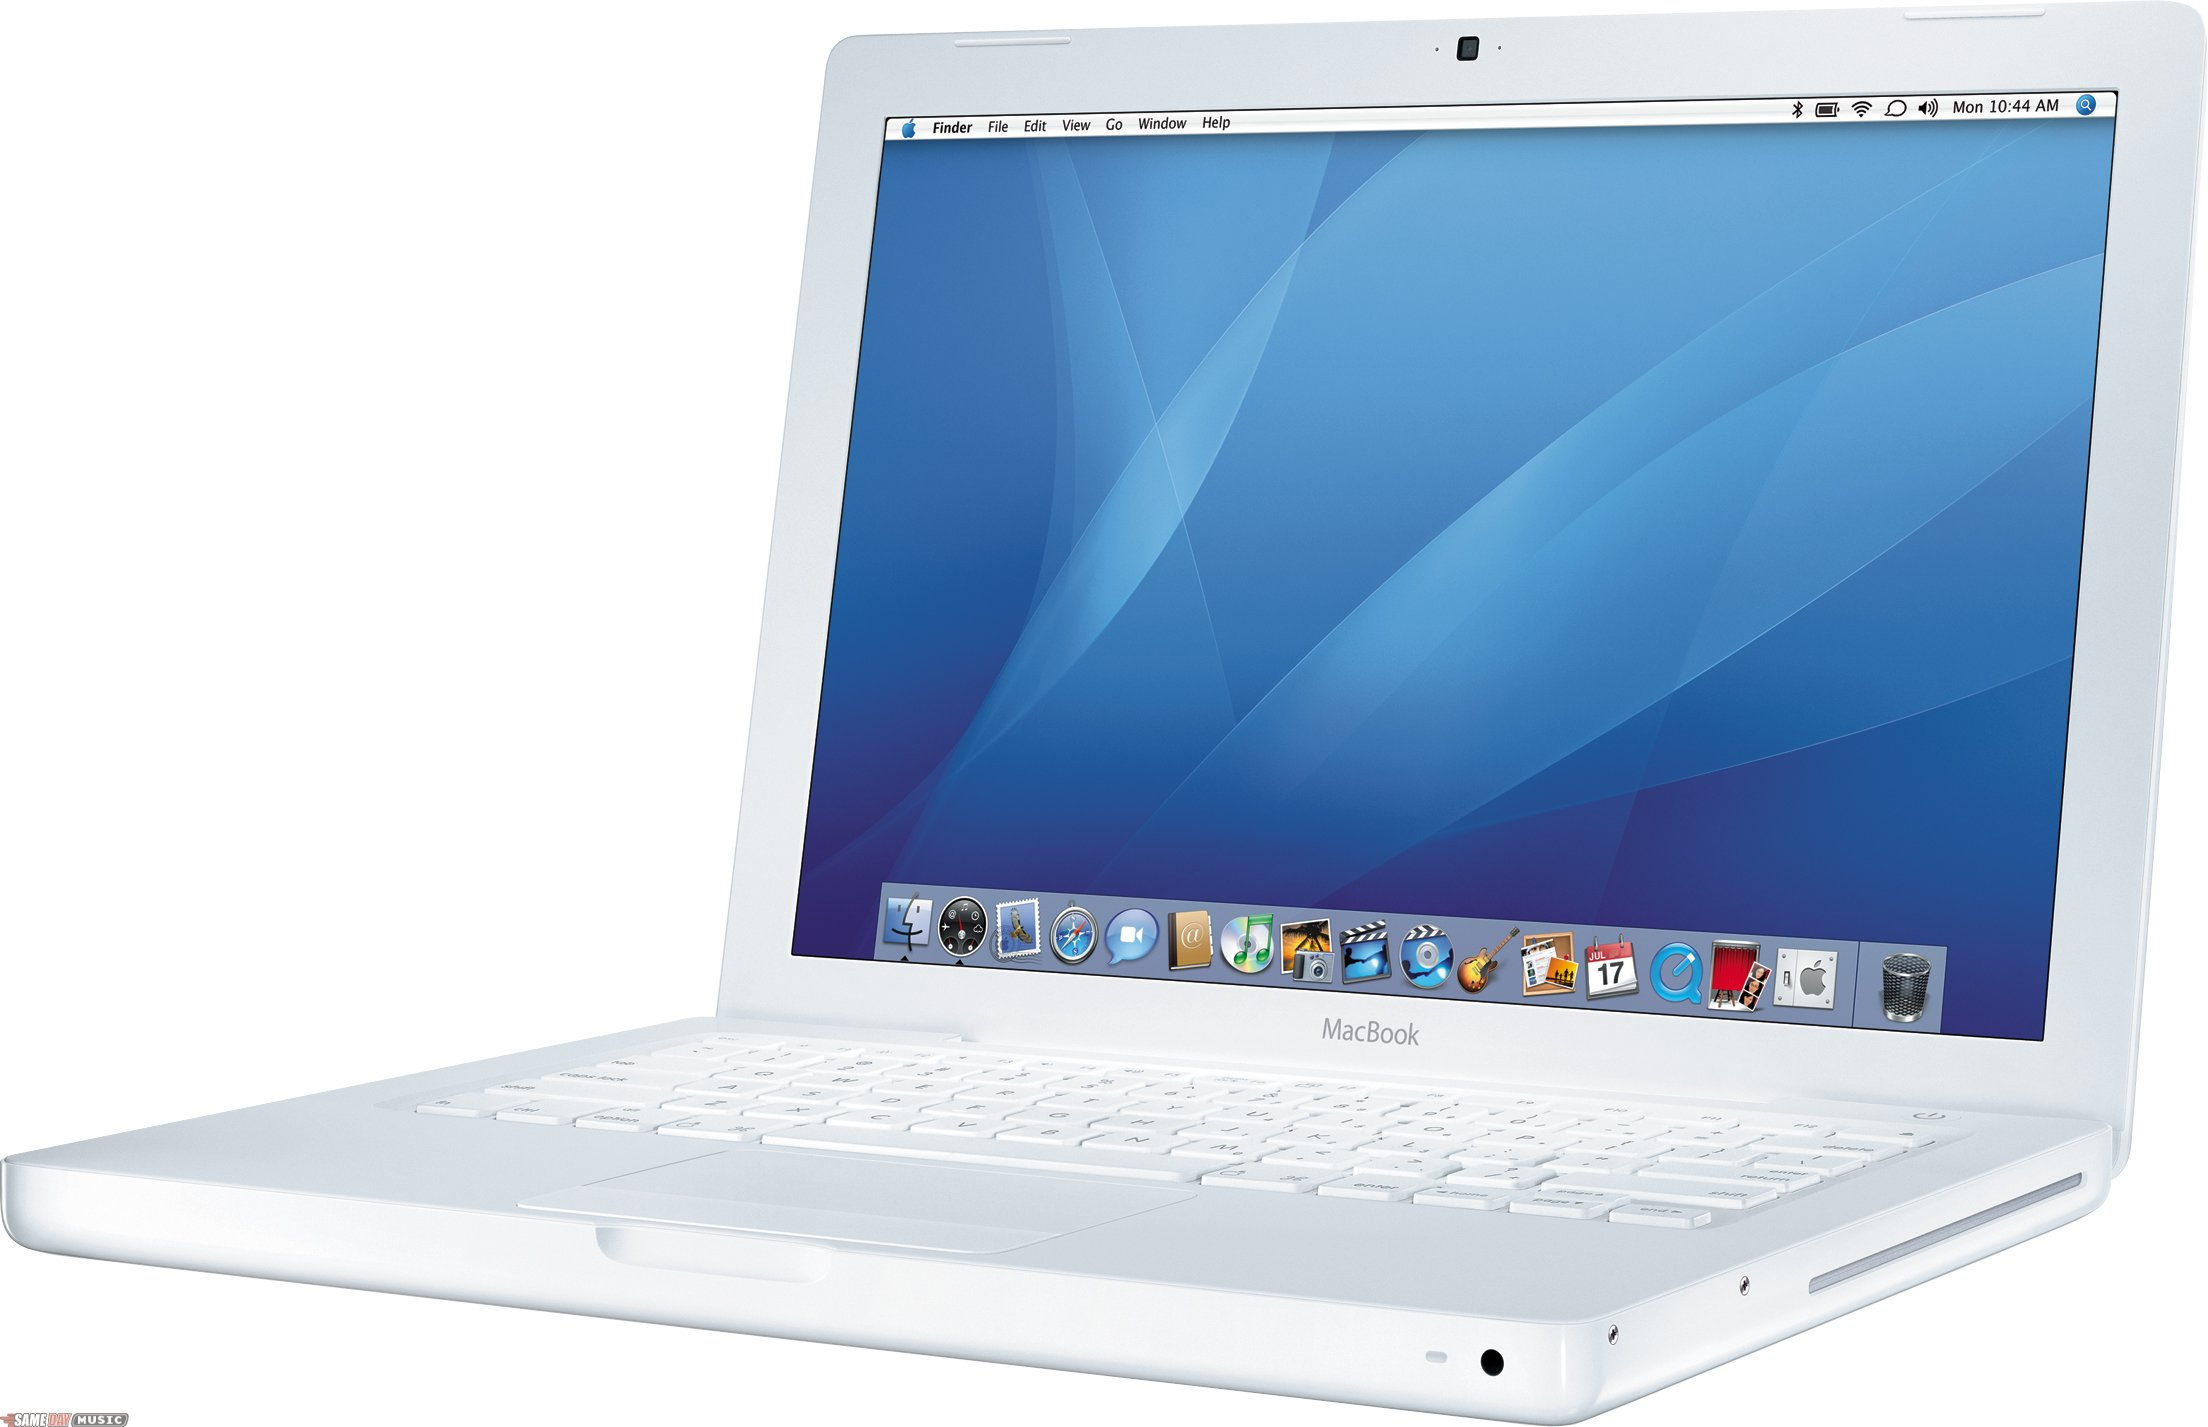 I'm looking to buy a new laptop. Any suggestions?